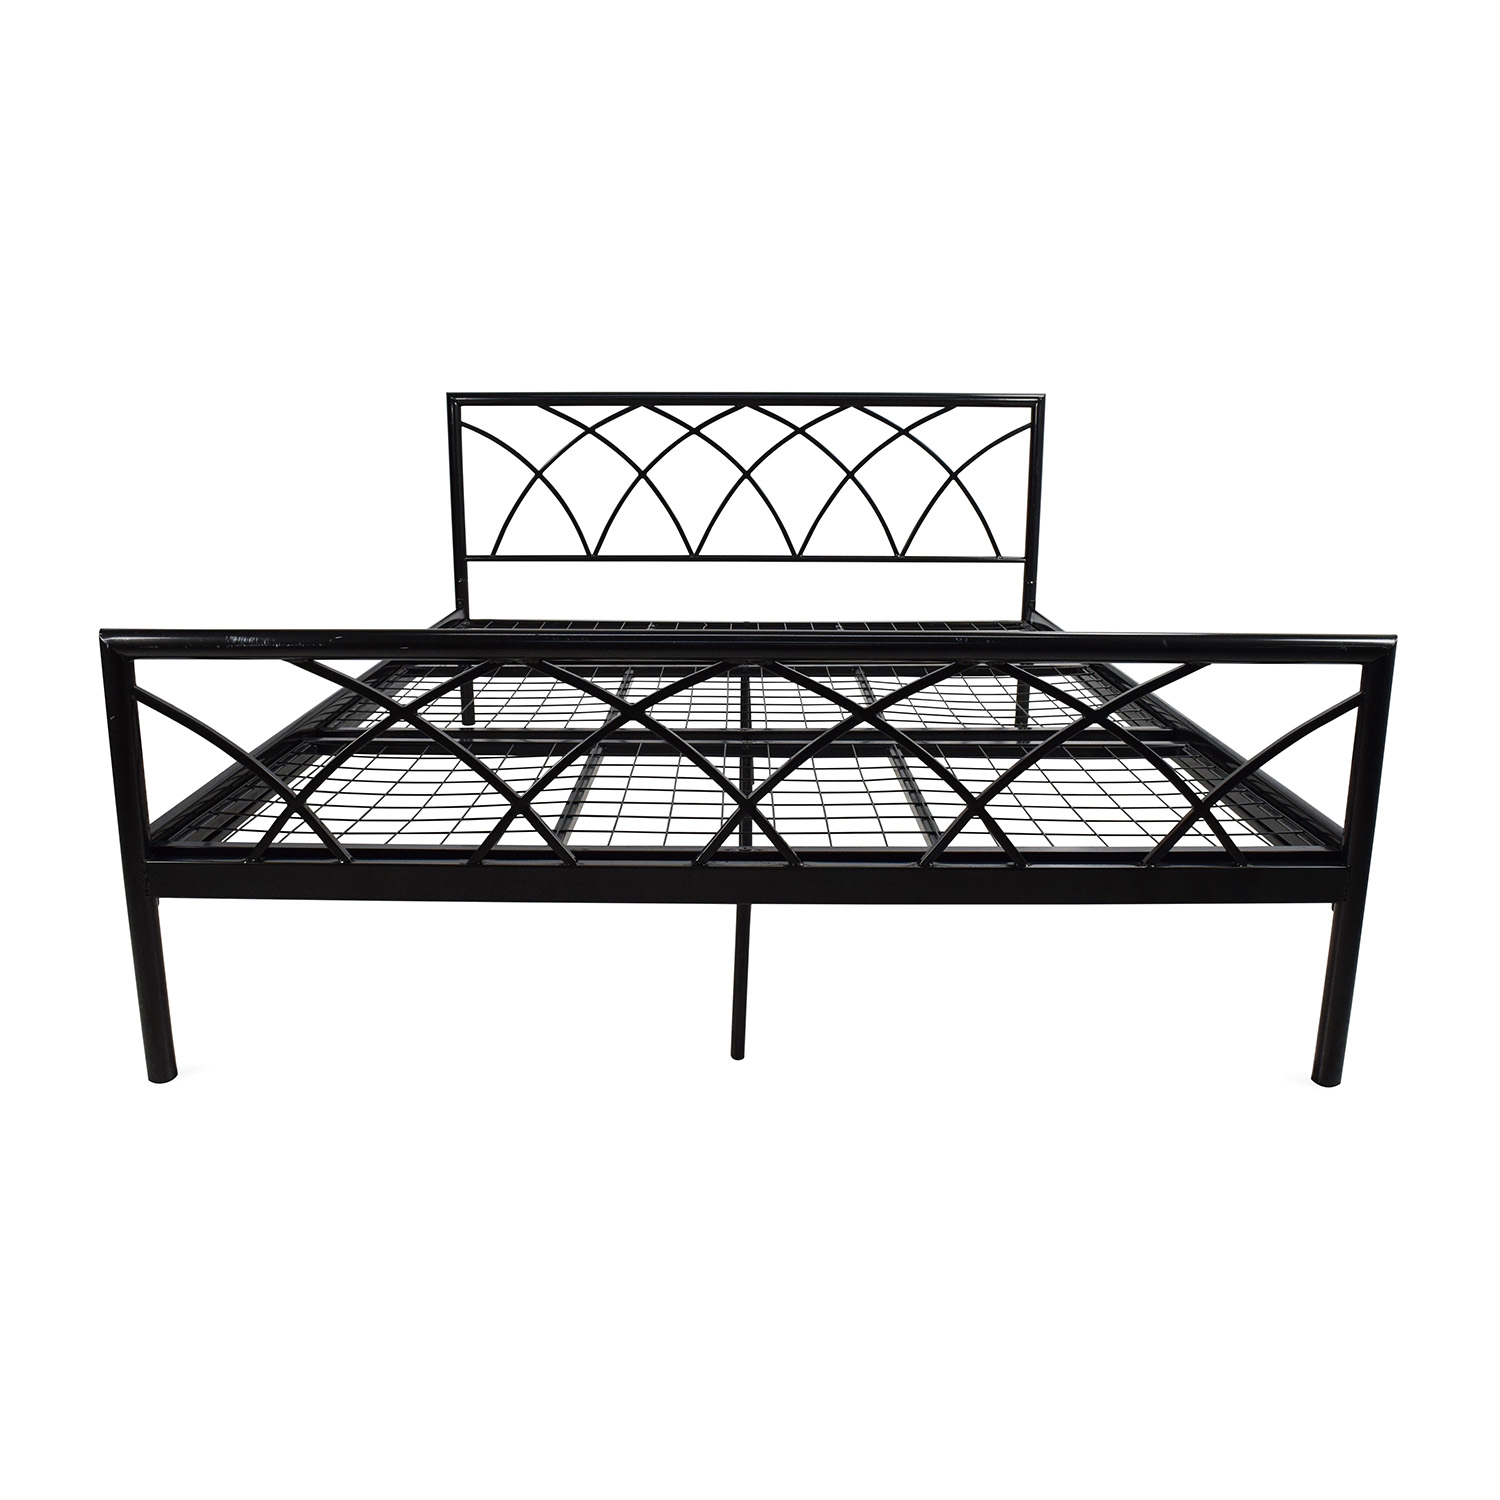 Size Of Queen Bed 75 Off Overstock Queen Size Metal Bed Frame Beds